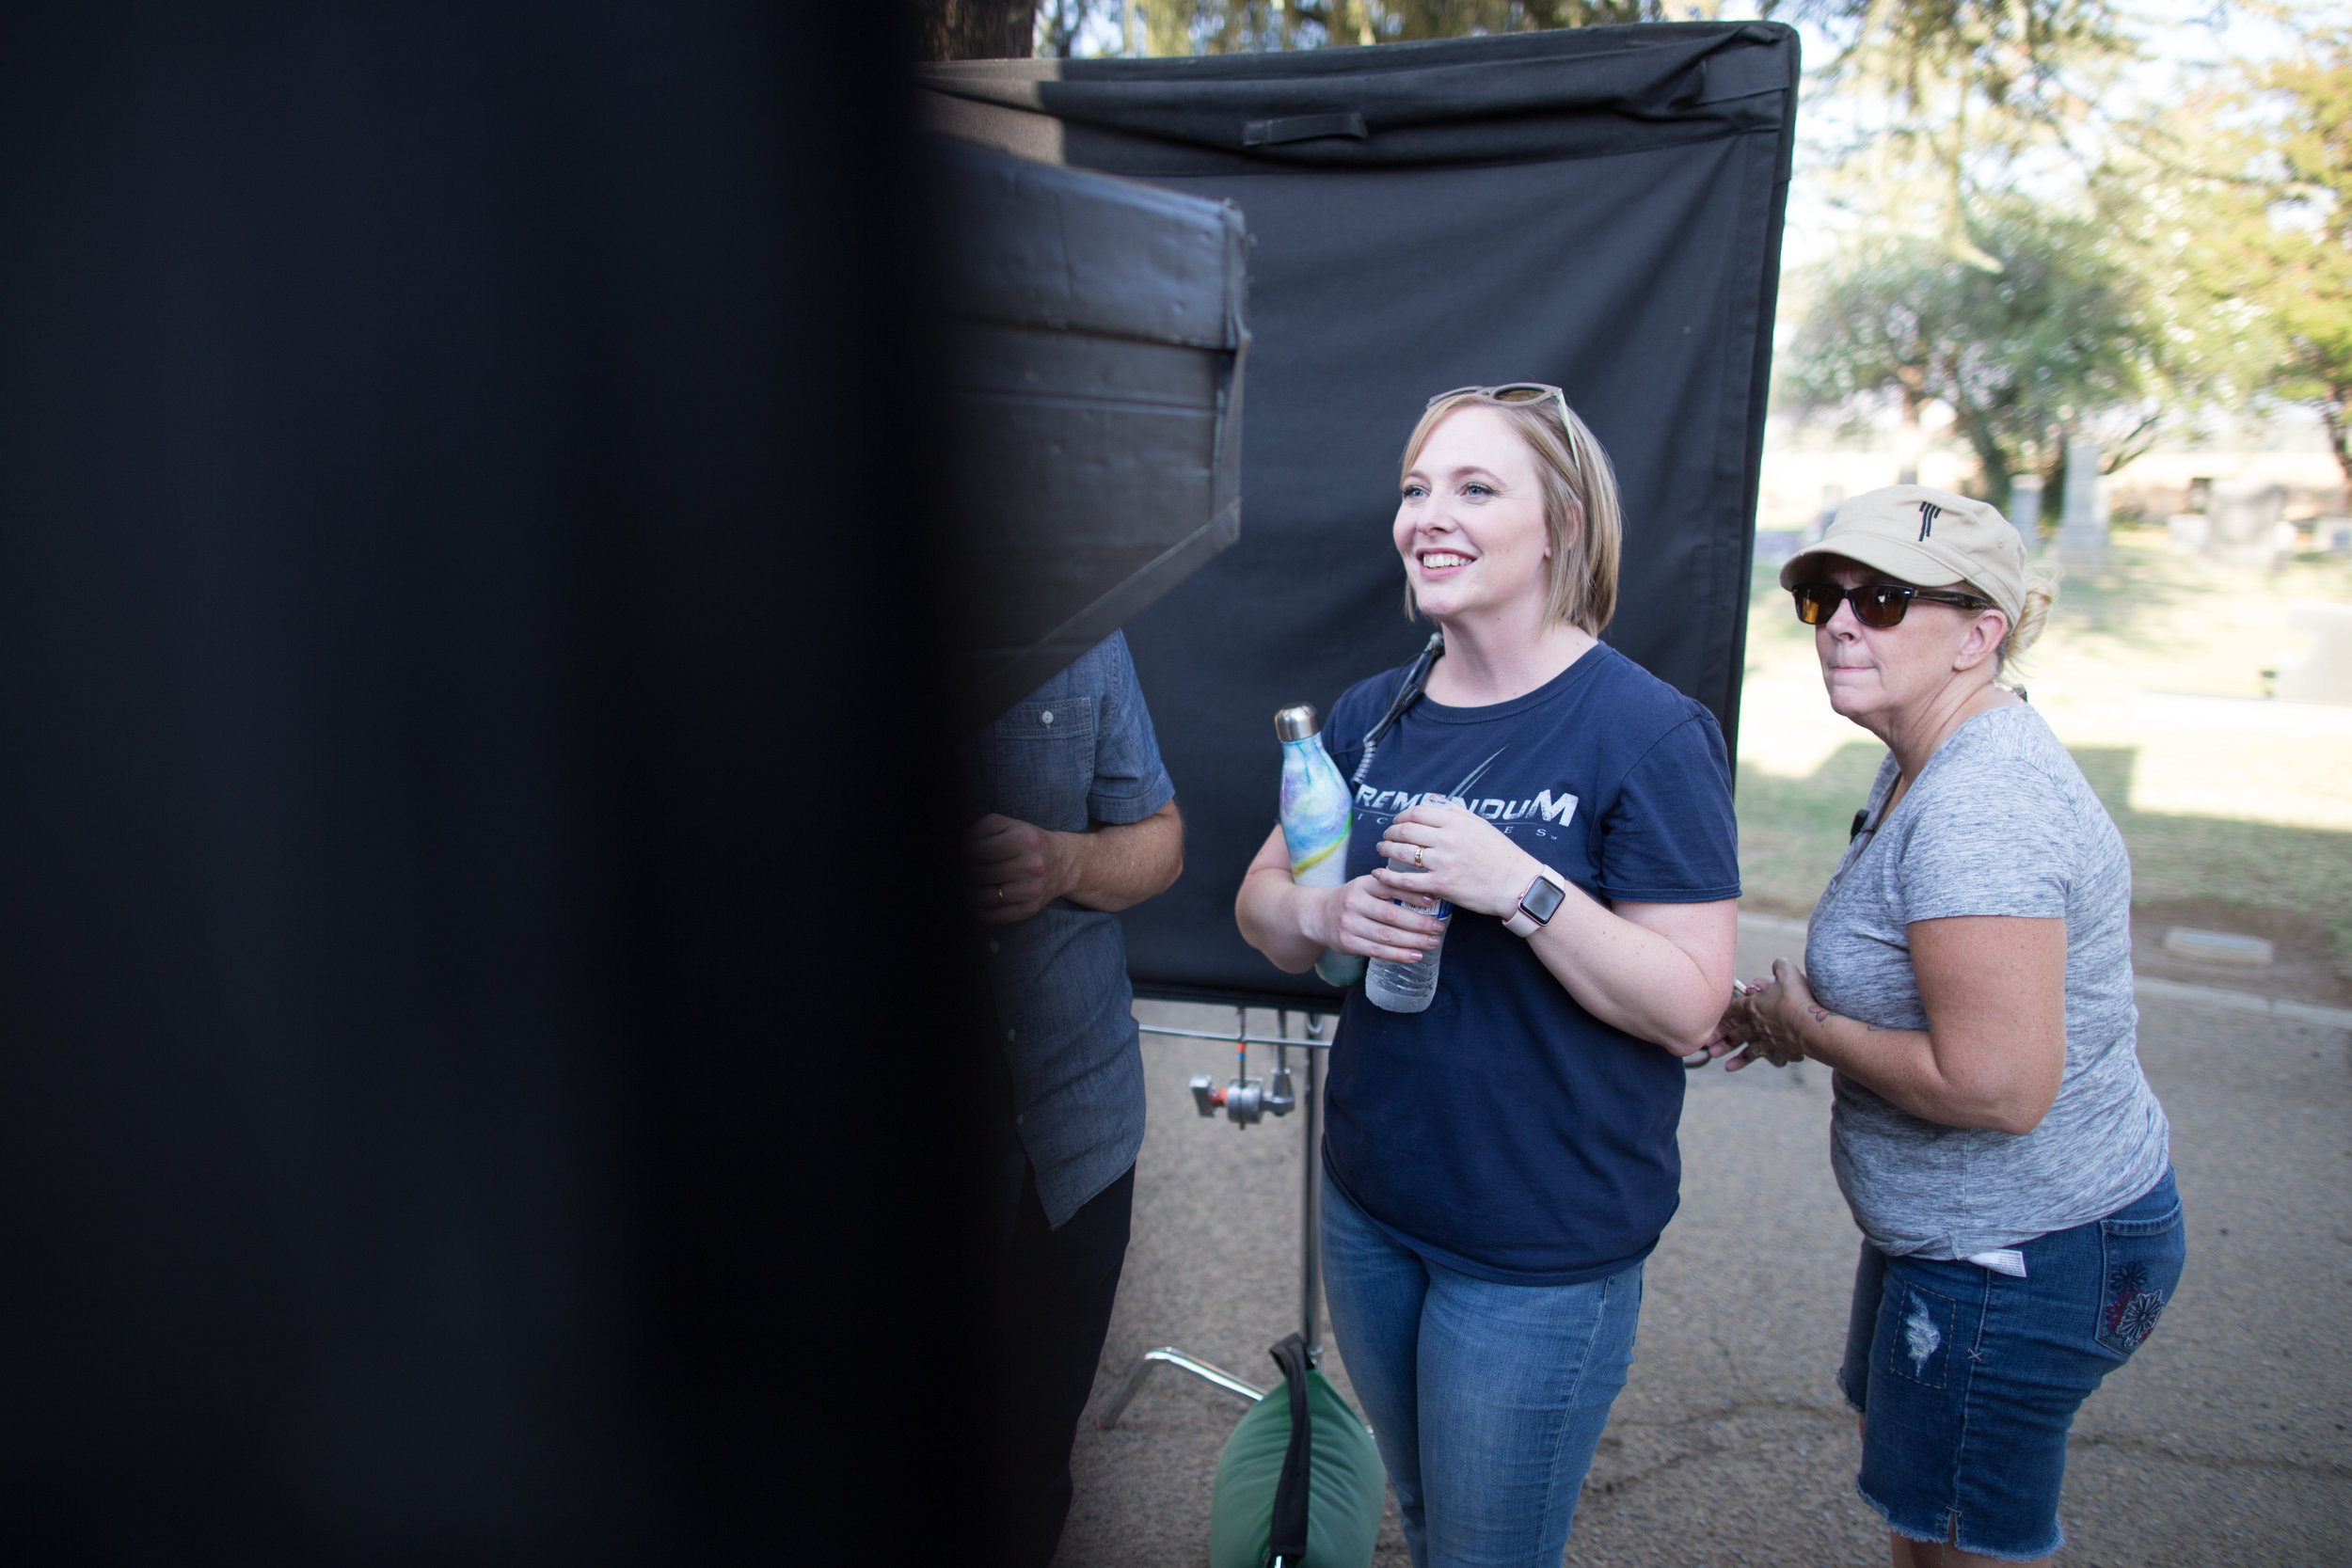 P.A. Erin Heasley watches monitor with much happiness as Wardrobe Supervisor Trina Short looks on. Whatever's on screen, it's  delightful.  Photo Credit: Cody Allred